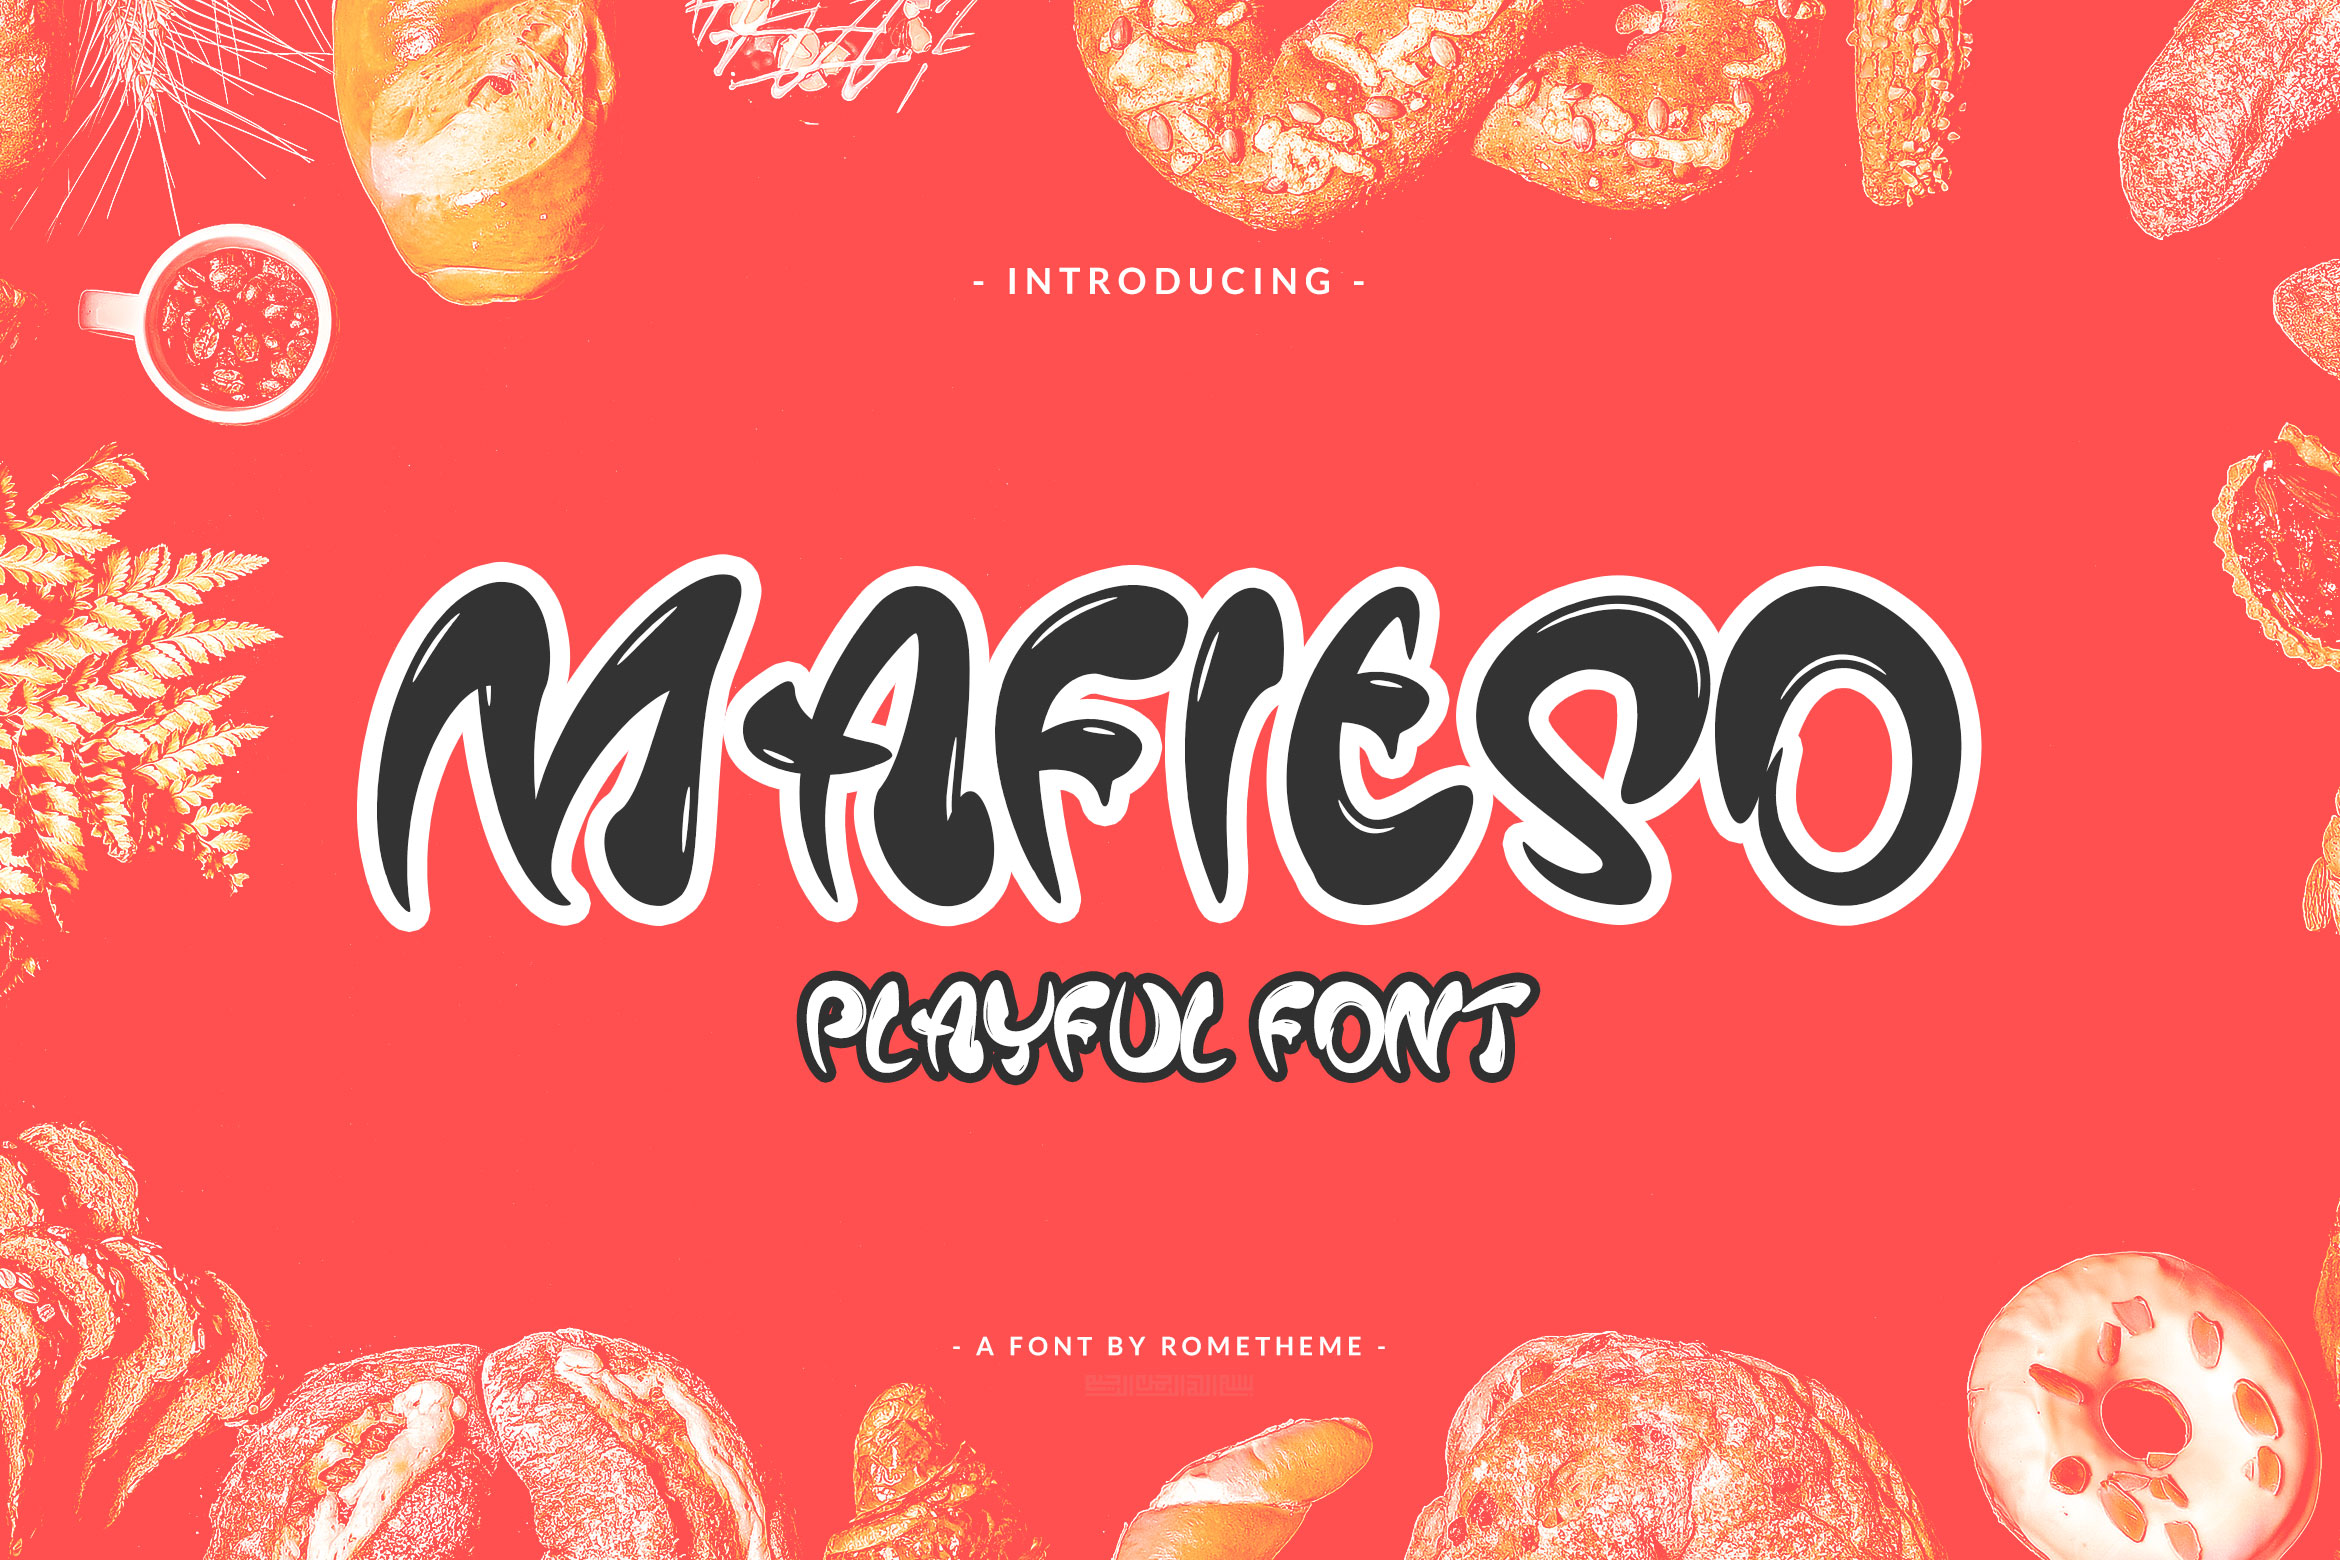 Mafieso - Playful Font example image 1